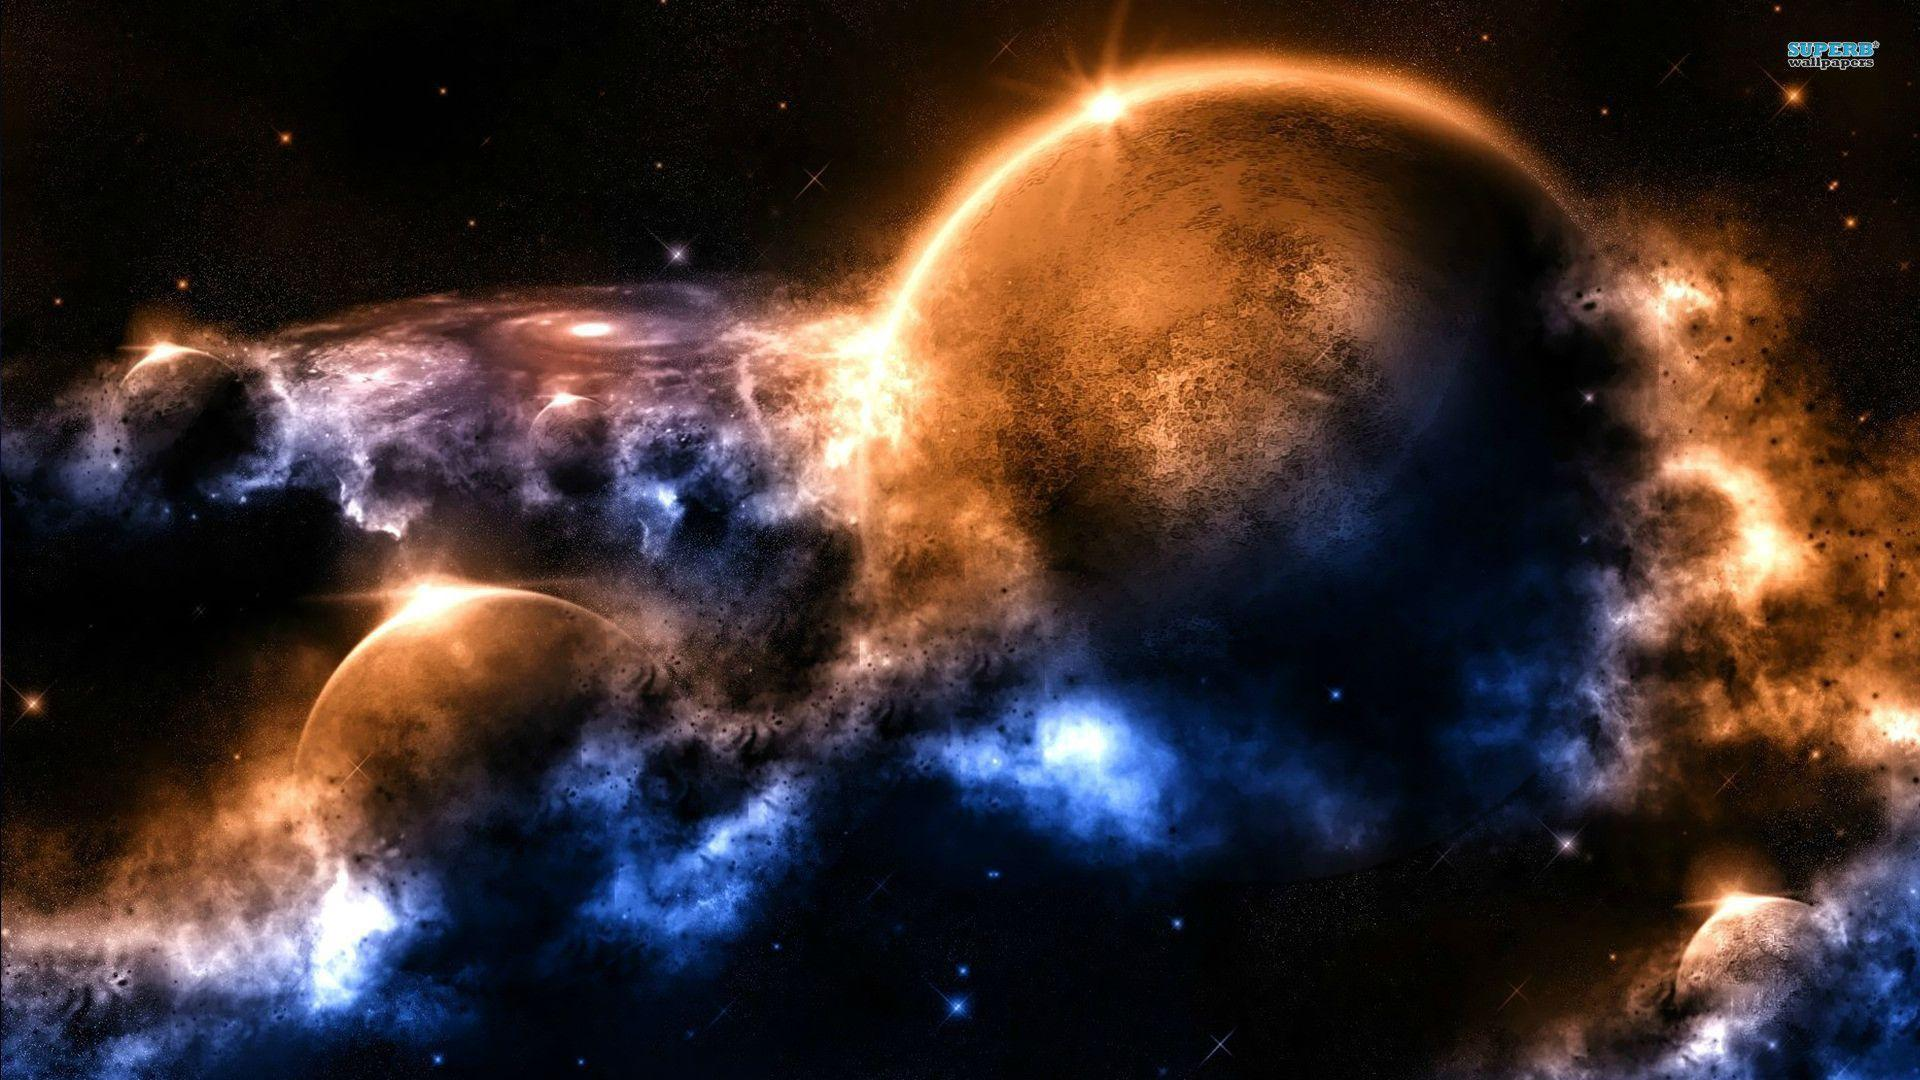 Space backgrounds 1920x1080 wallpaper cave - Space backgrounds 1920x1080 ...